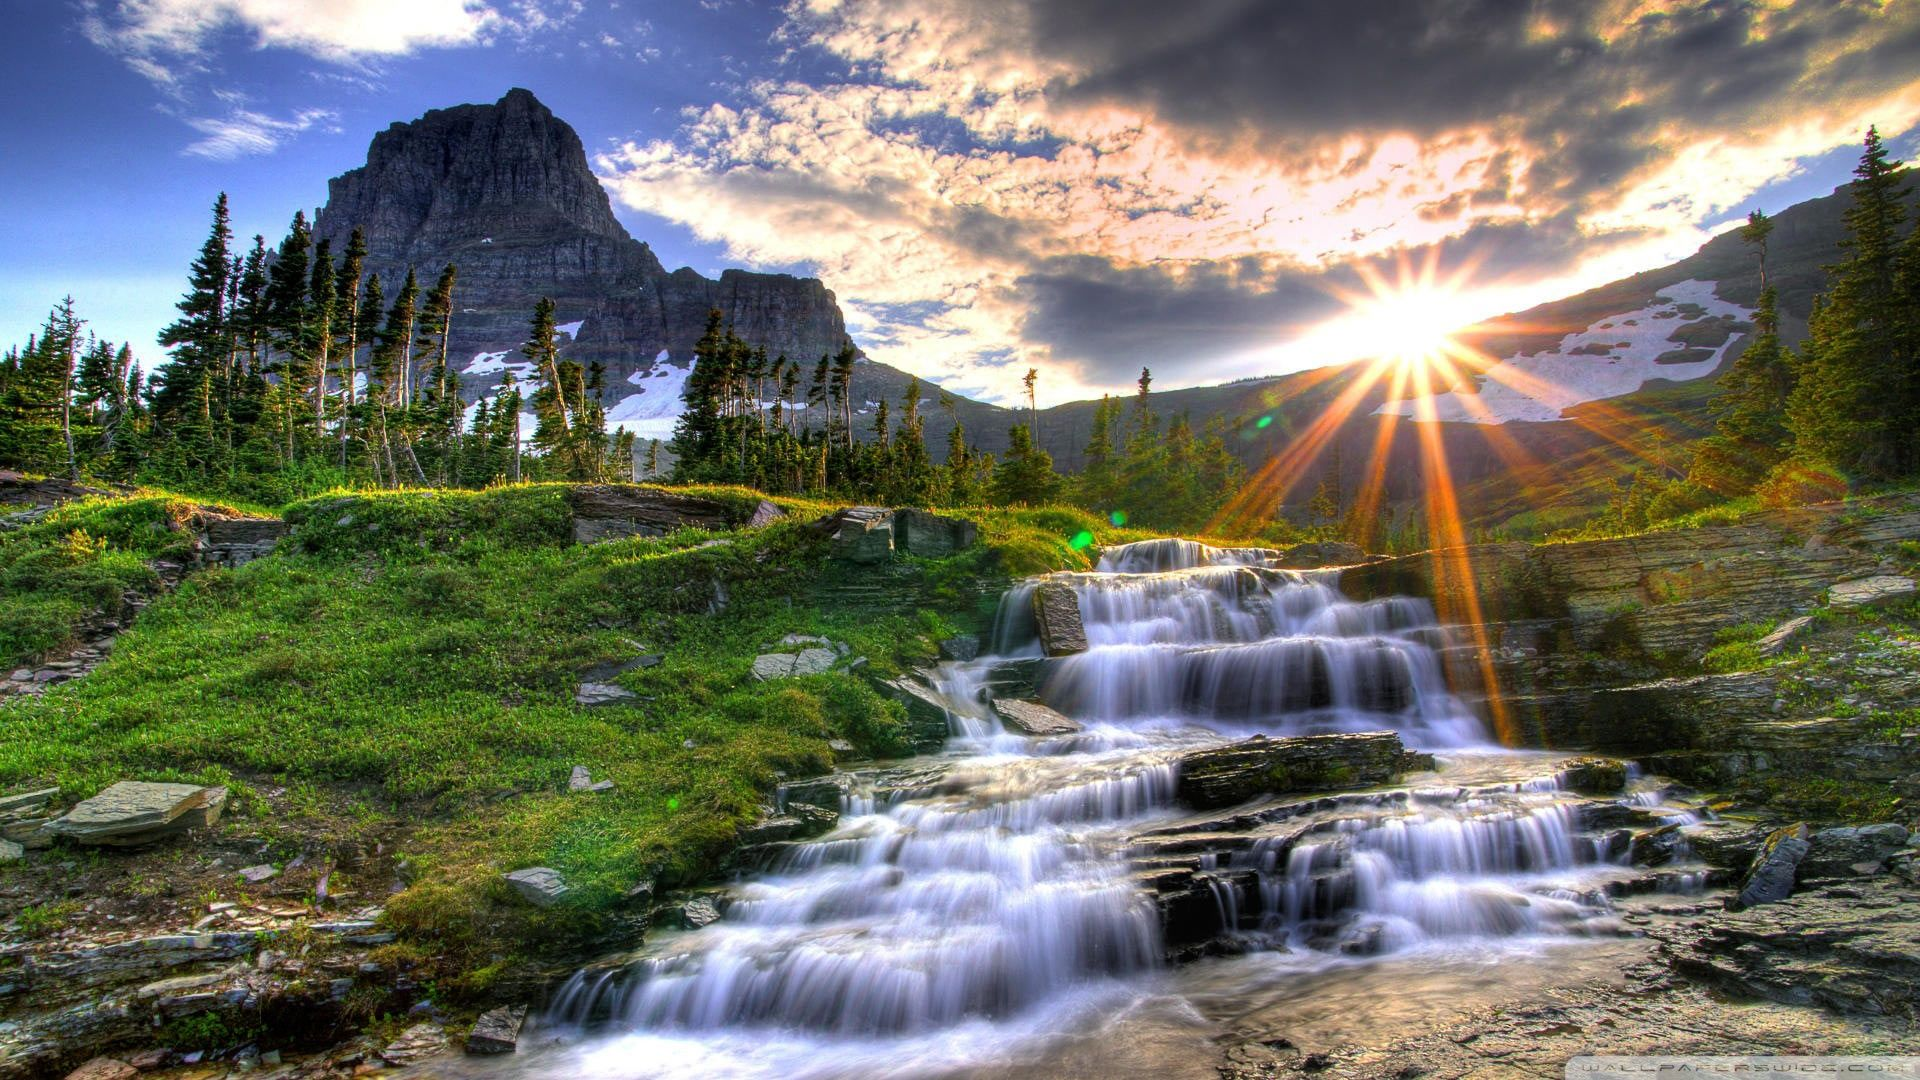 1920X1080 HD Nature Wallpapers - Top Free 1920X1080 HD Nature